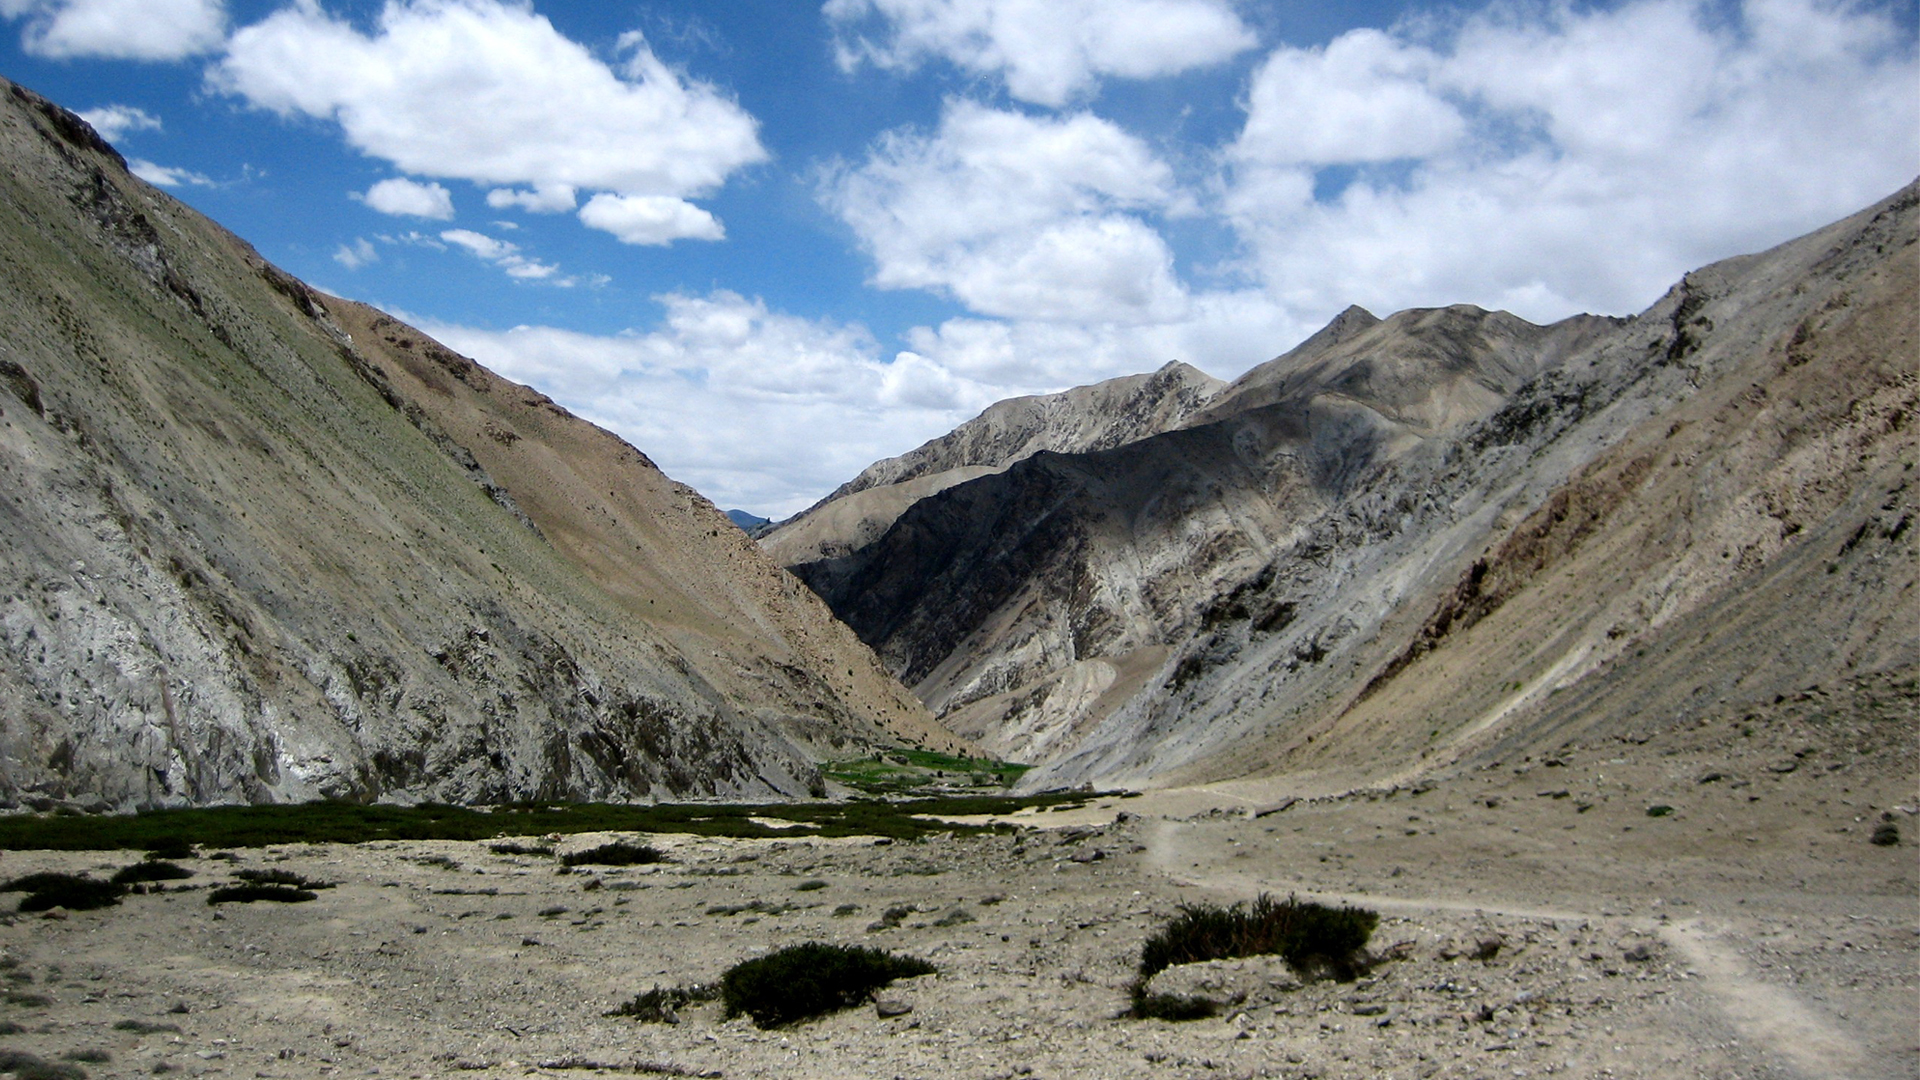 Markha Valley Trek In India As One Of The Most Beautiful Place In The World Hd Wallpapers